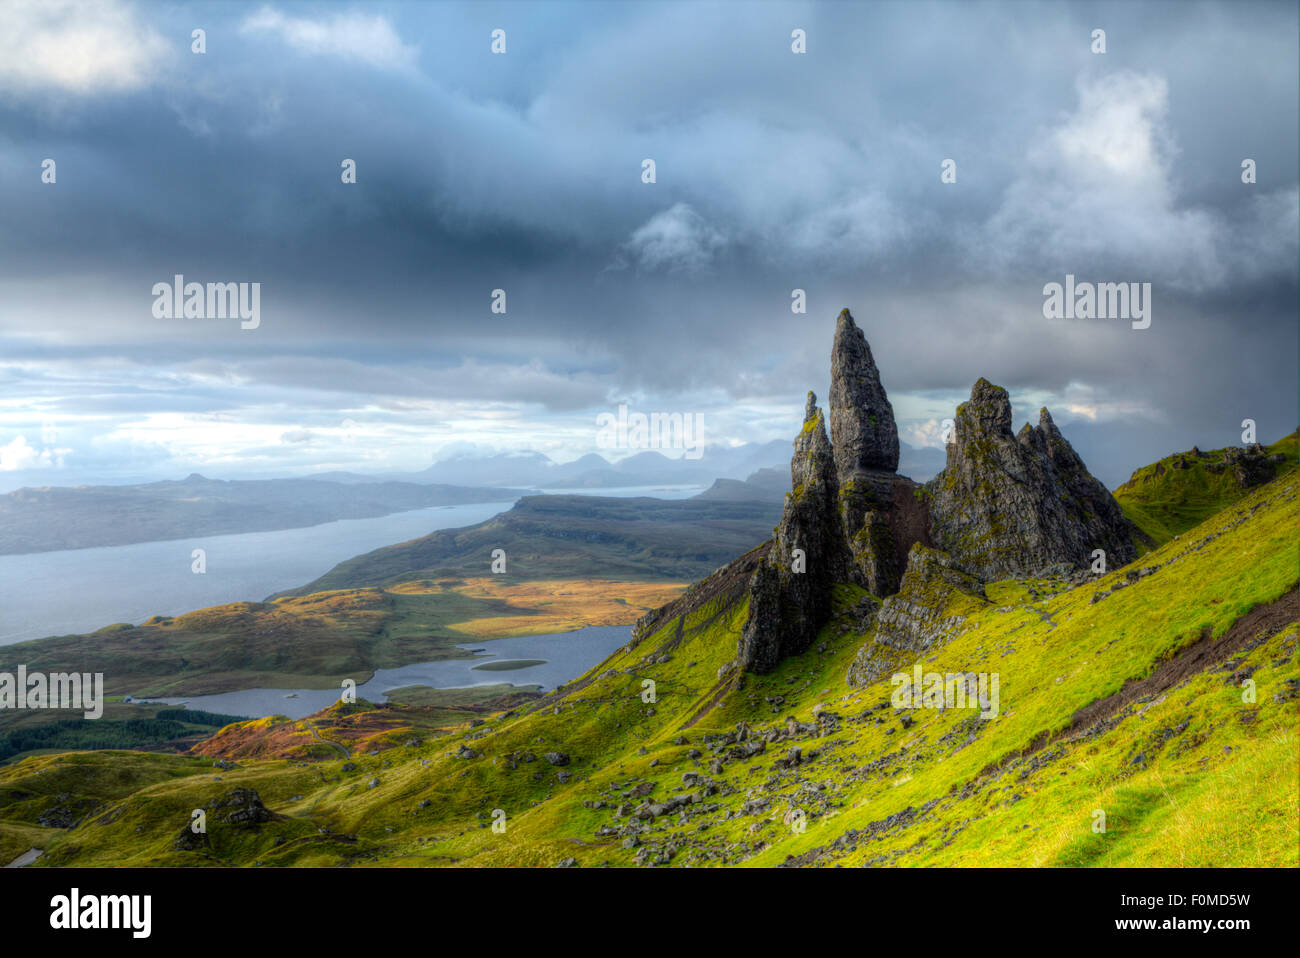 The Old Man of Storr rocks on Trotternish ridge on northern Skye island showing the Loch Leathan lake, the Inner - Stock Image